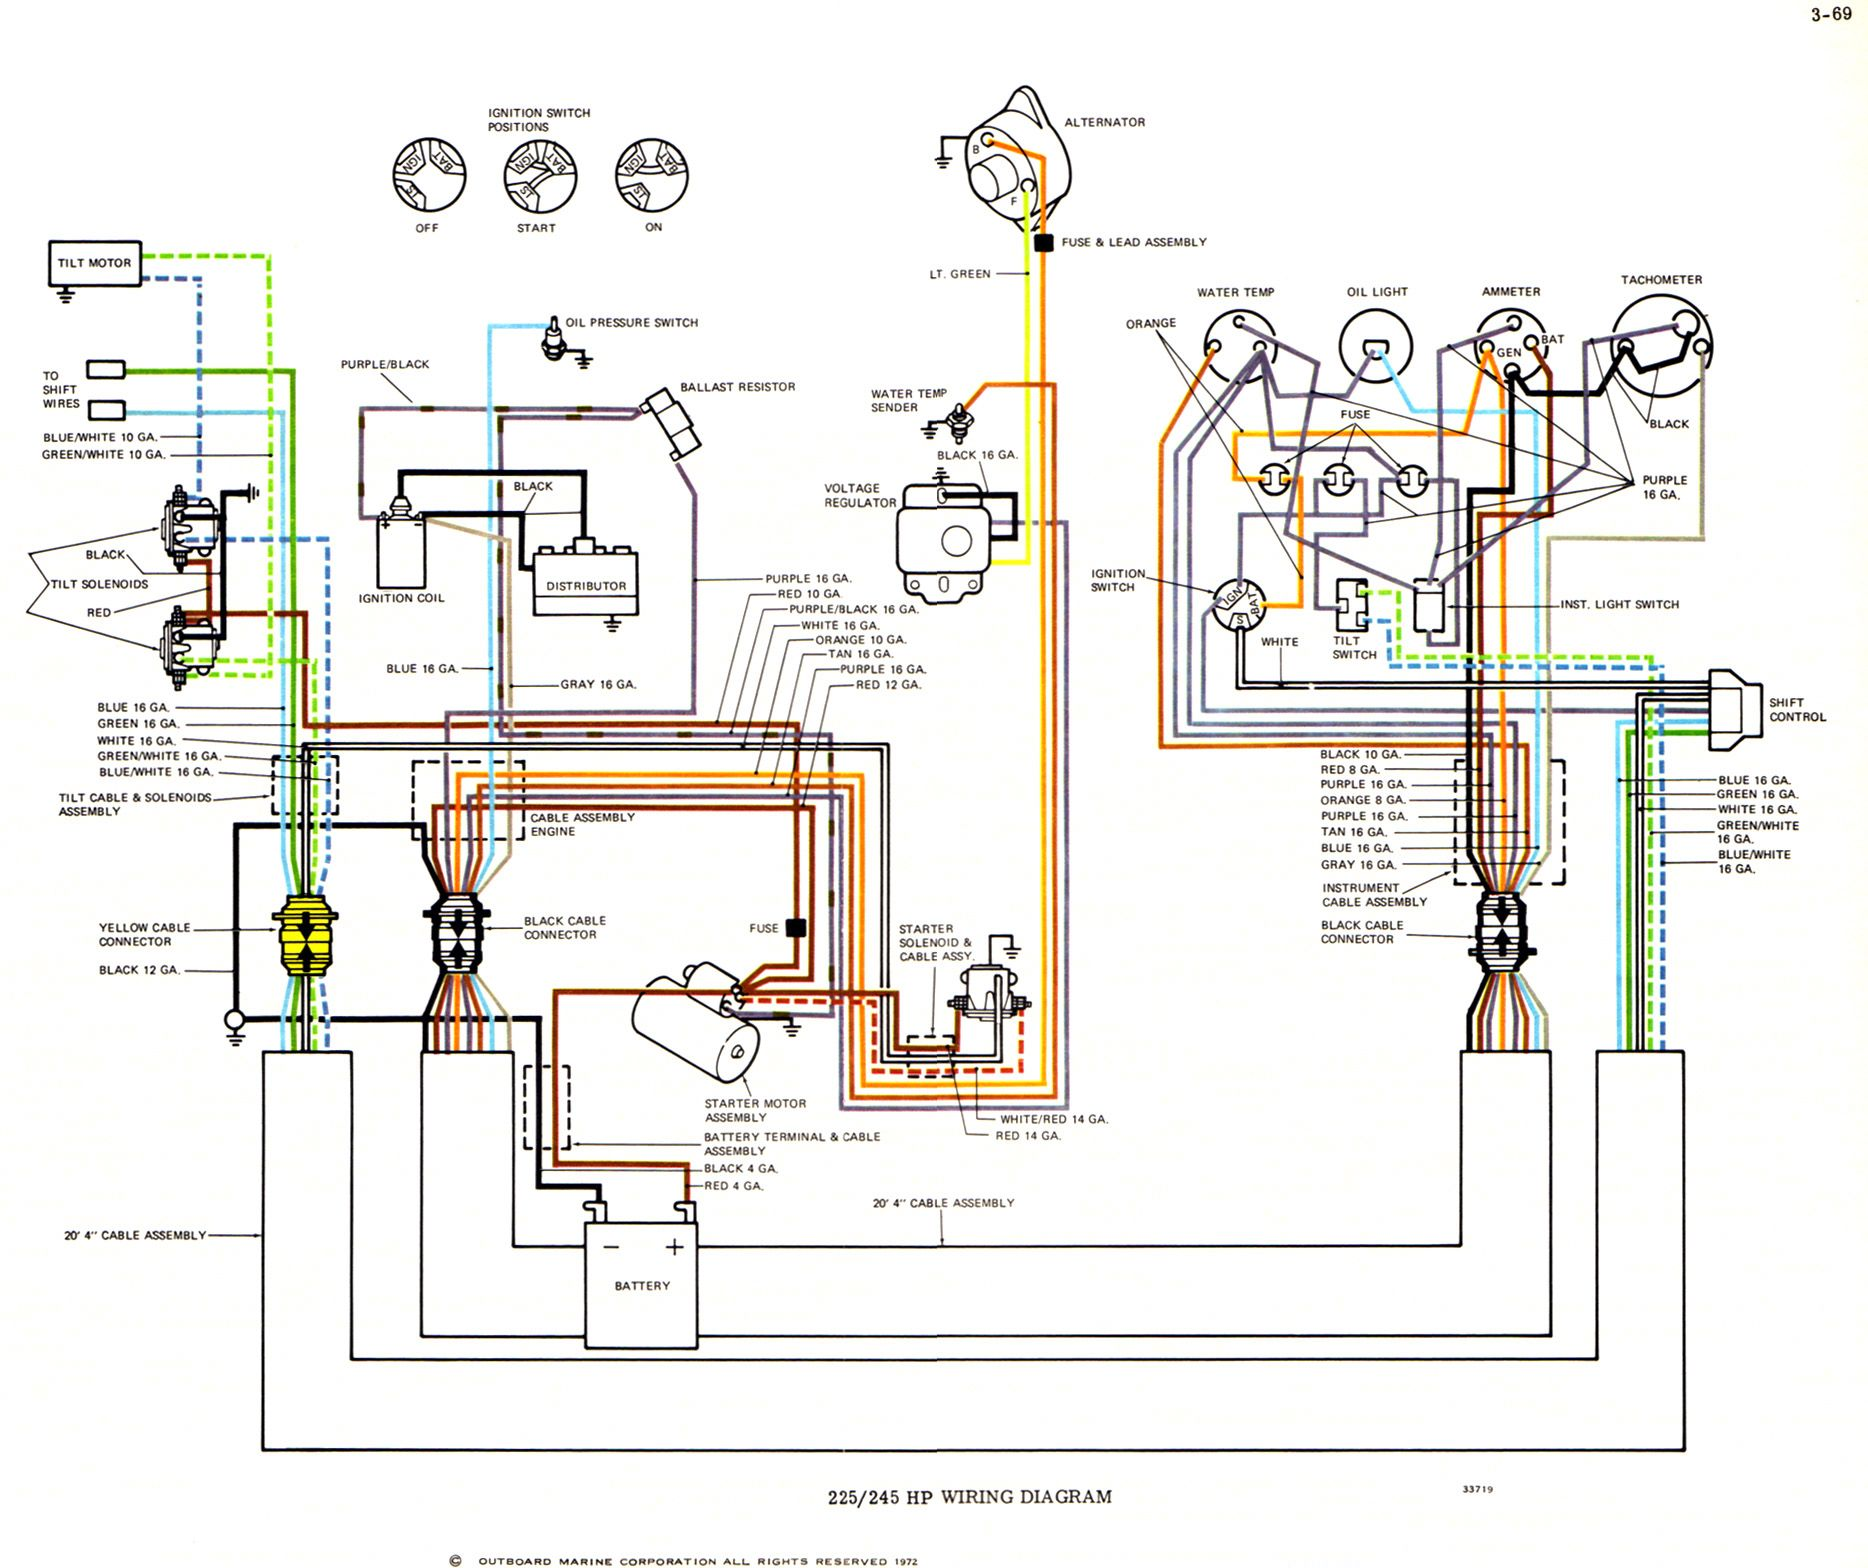 boat wiring electrical wiring diagram electric circuit house wiring boat engine  [ 1868 x 1568 Pixel ]